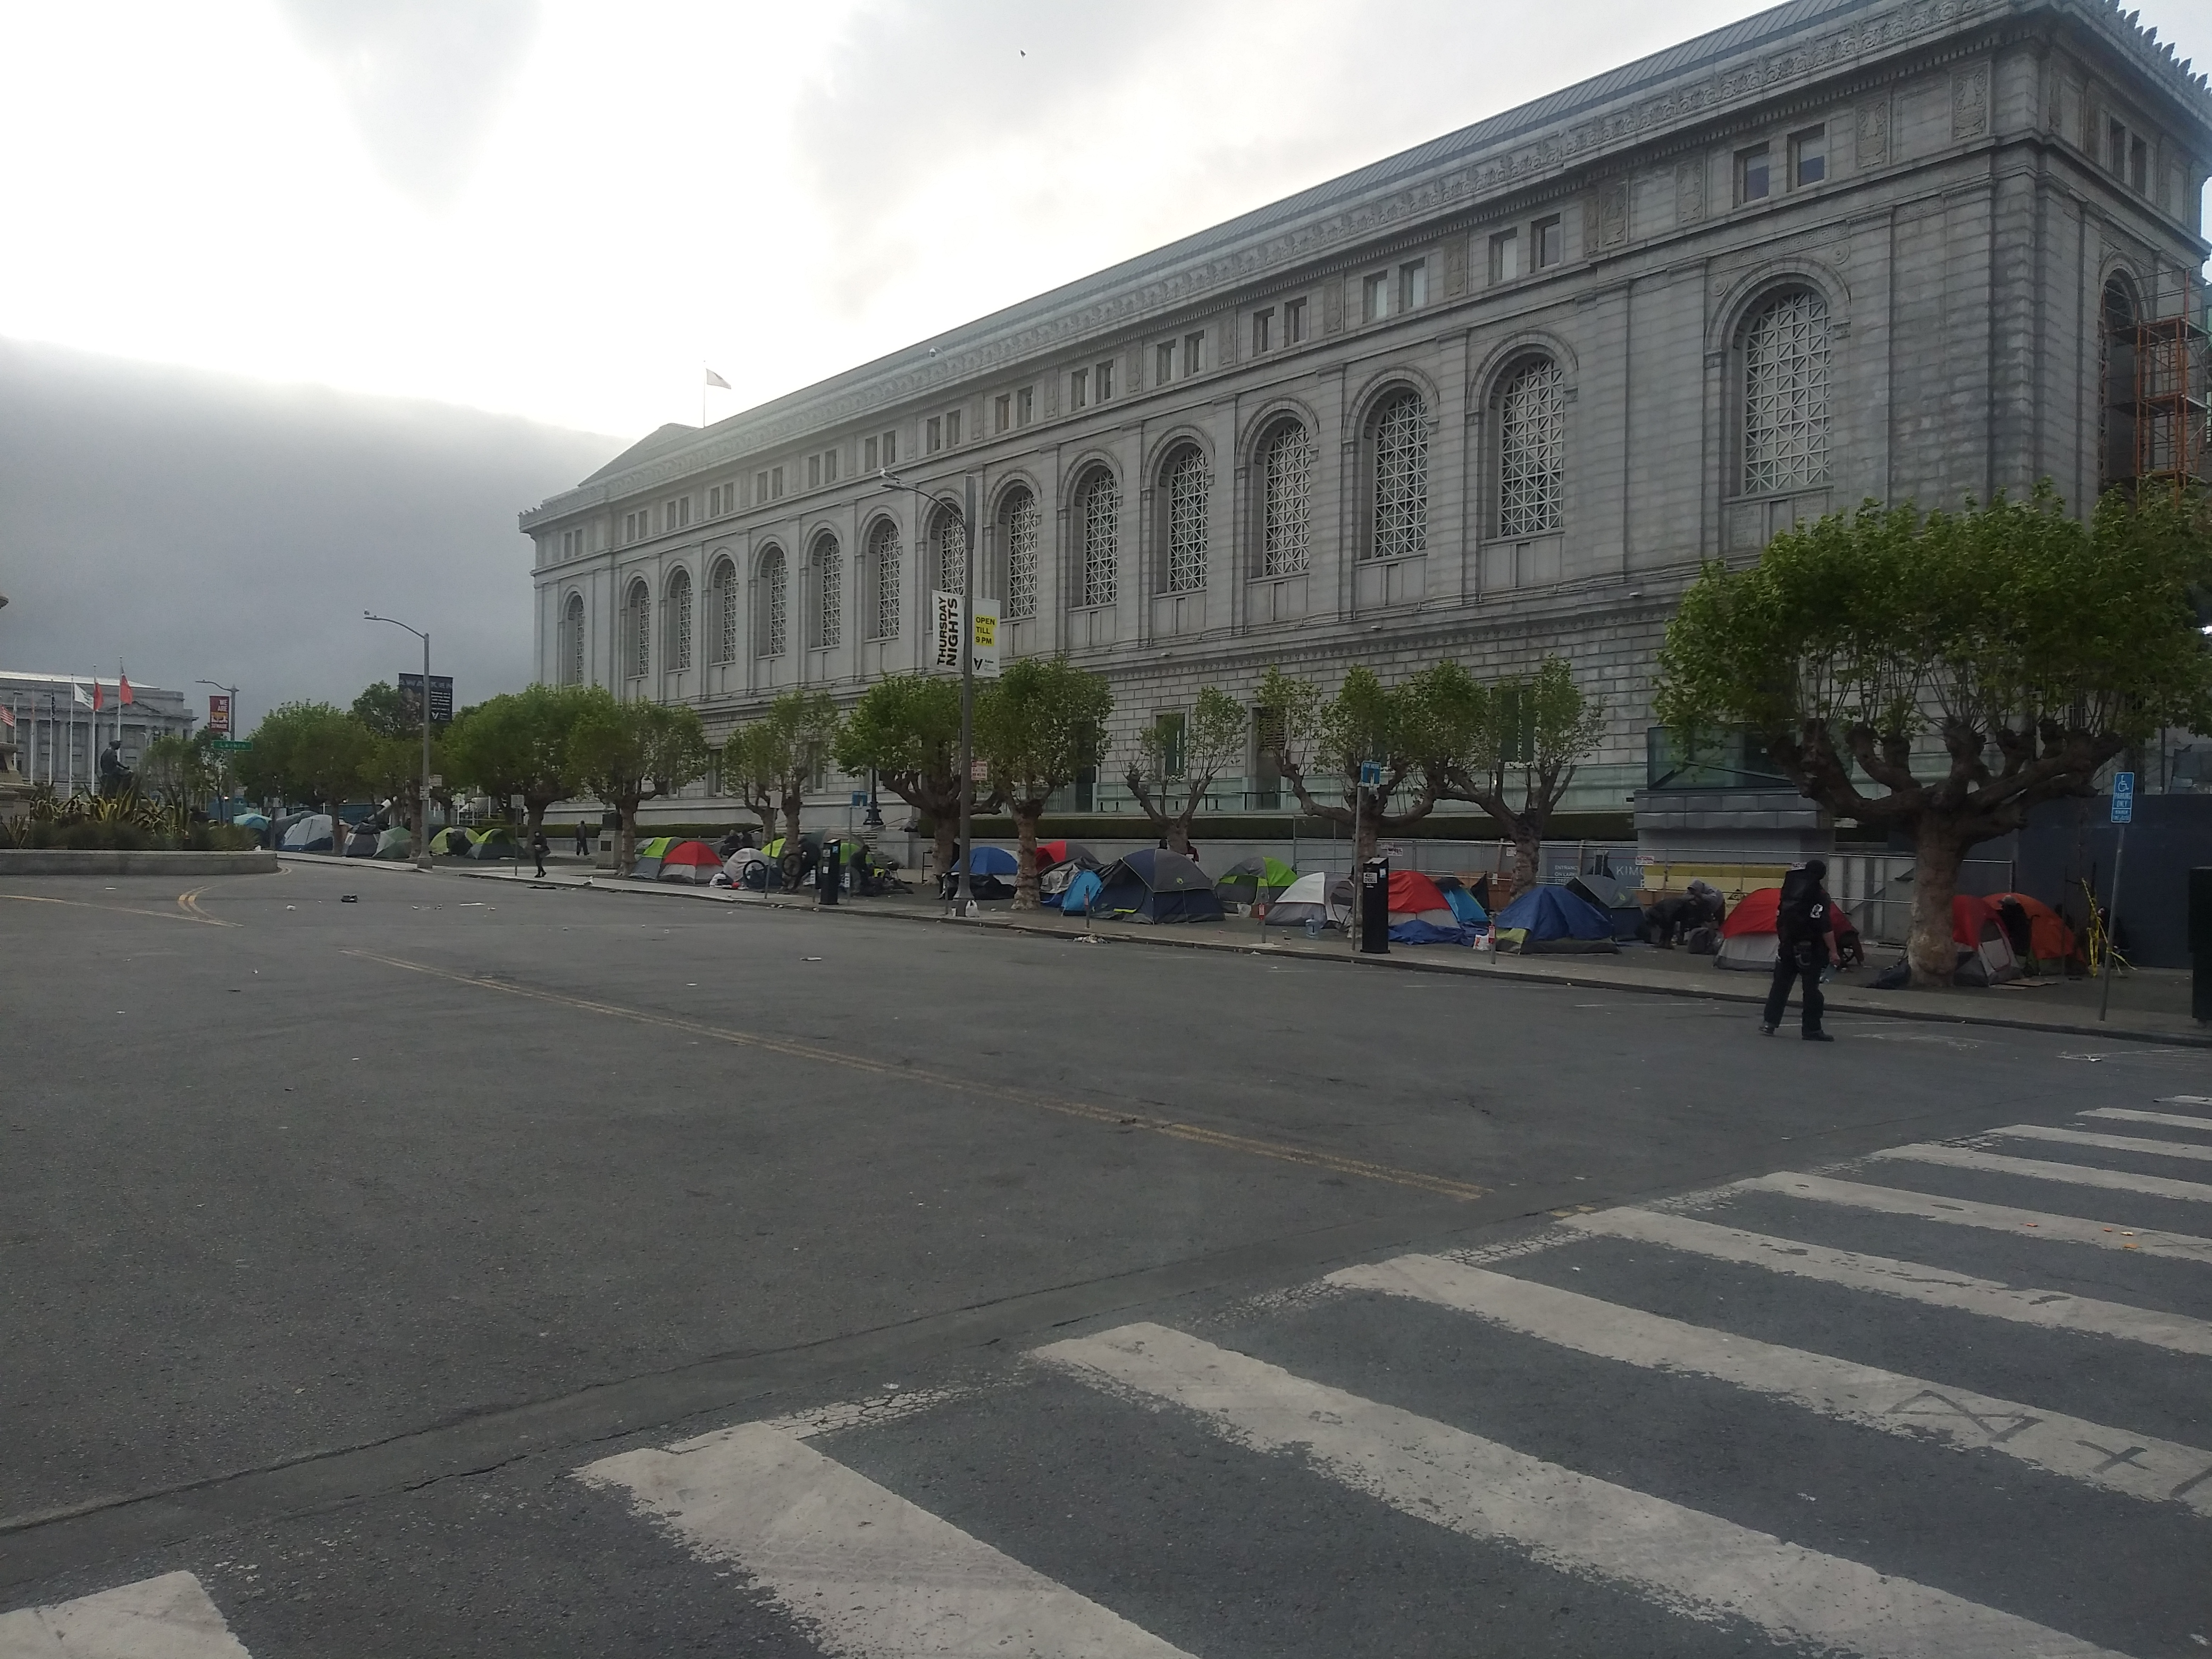 Photo of tents pitched on sidewalk of downtown San Francisco